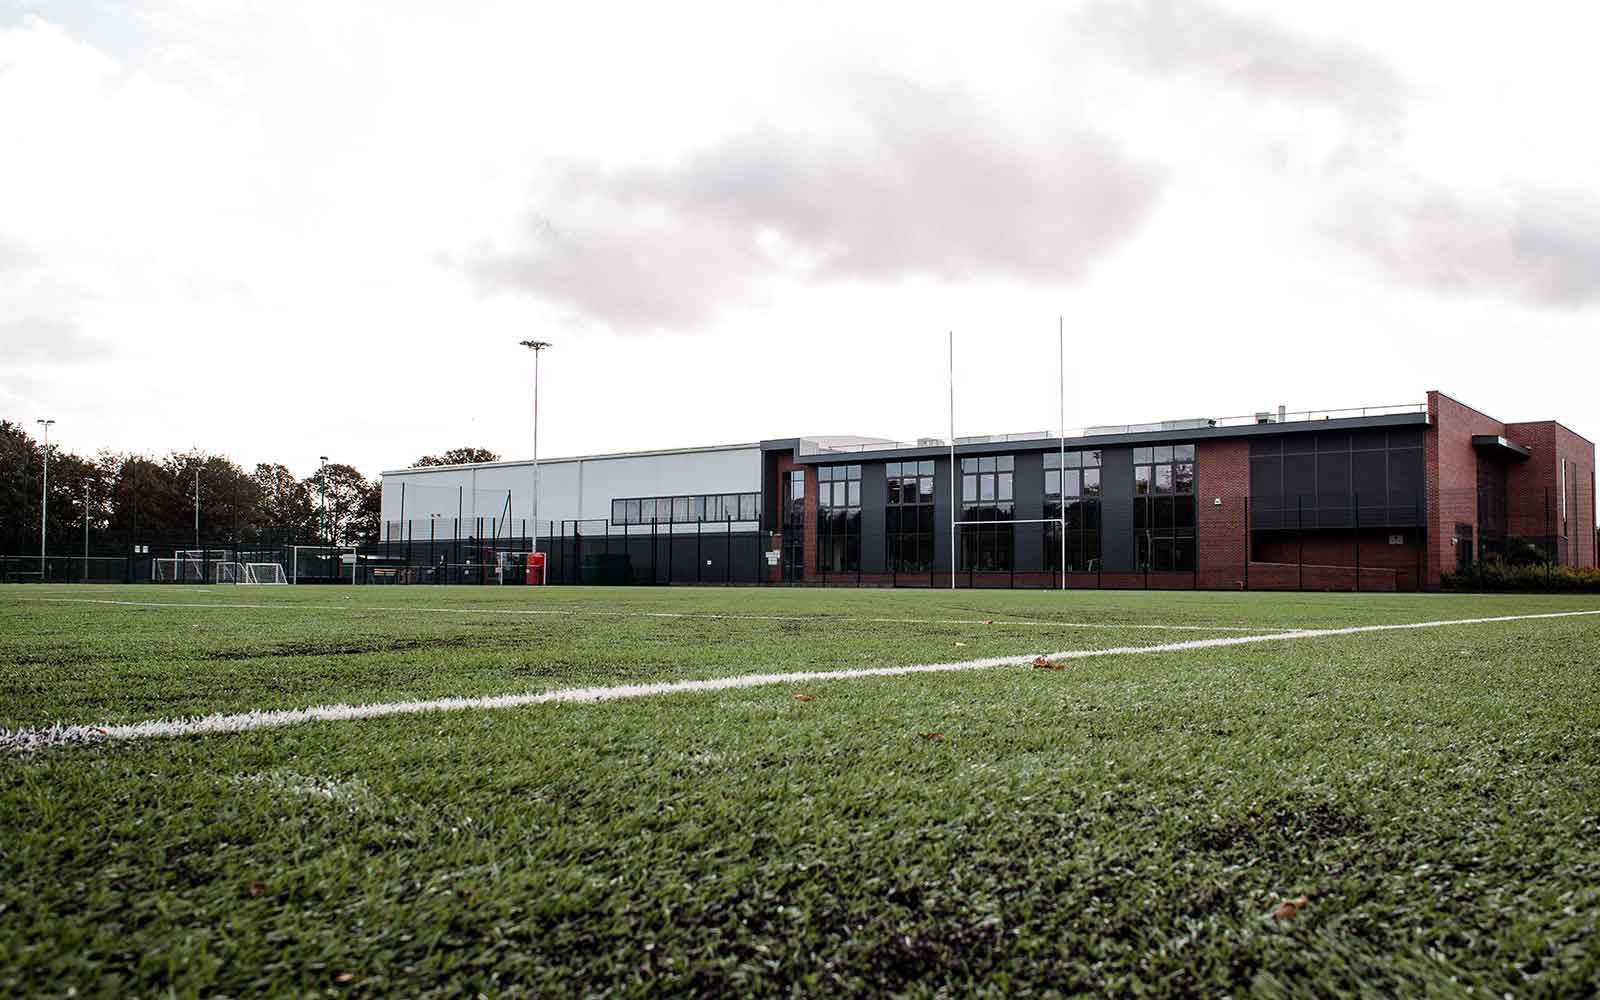 https://nestlerowntreerufc.co.uk/wp-content/uploads/2020/06/haxby-road-sports-pitch.jpg